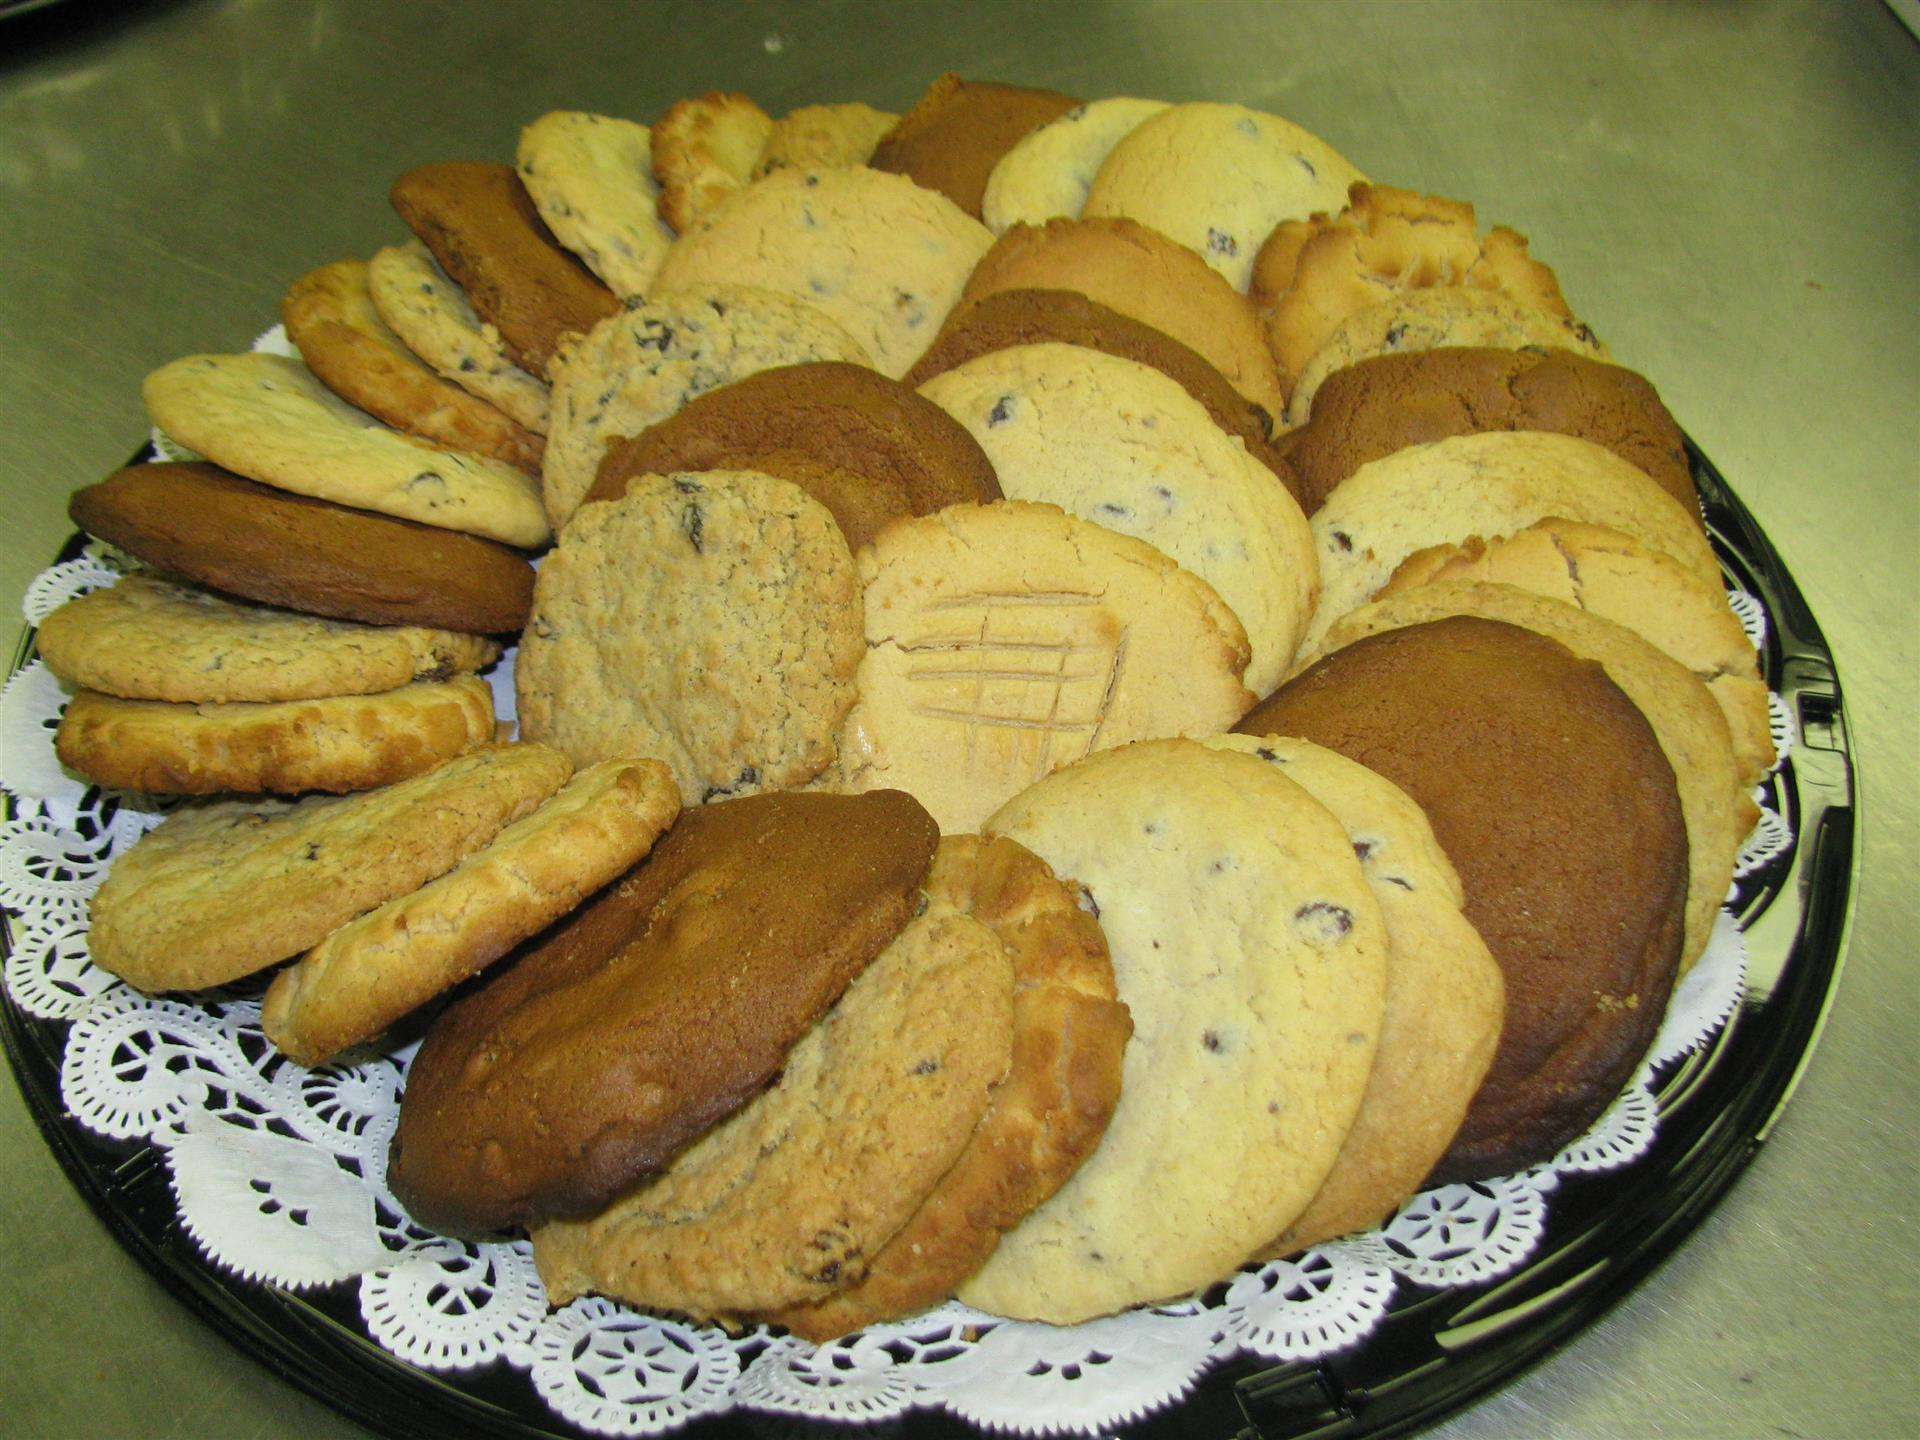 Platter of assorted cookies